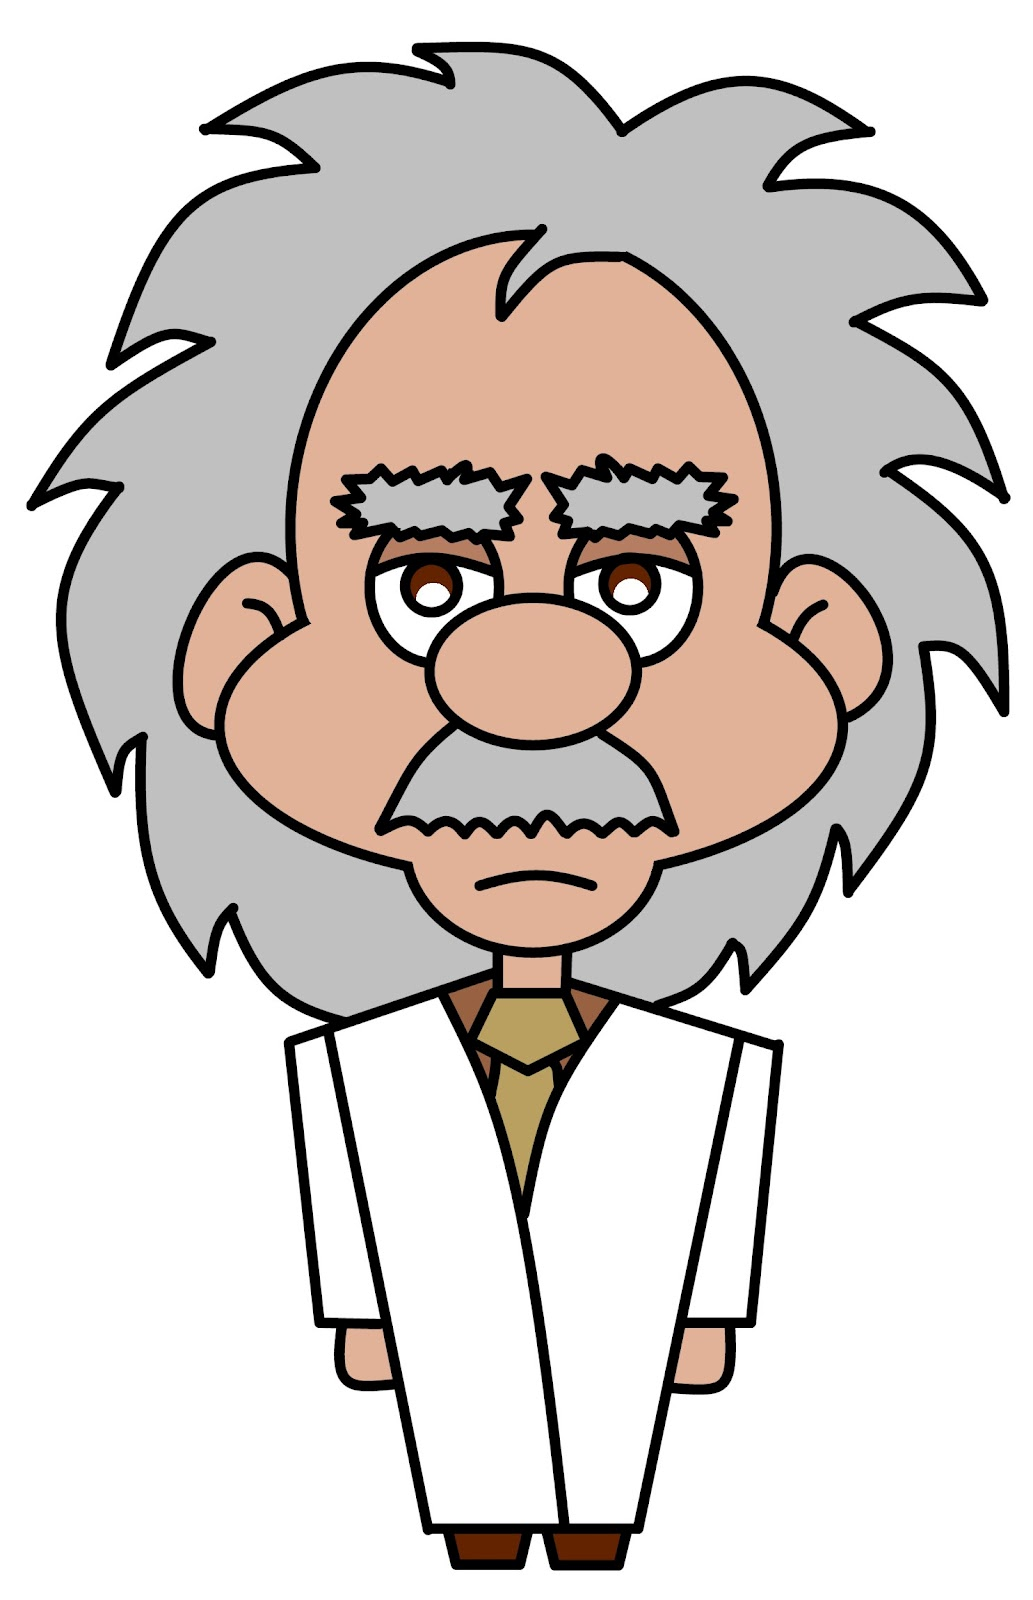 Albert Einstein Cartoon.